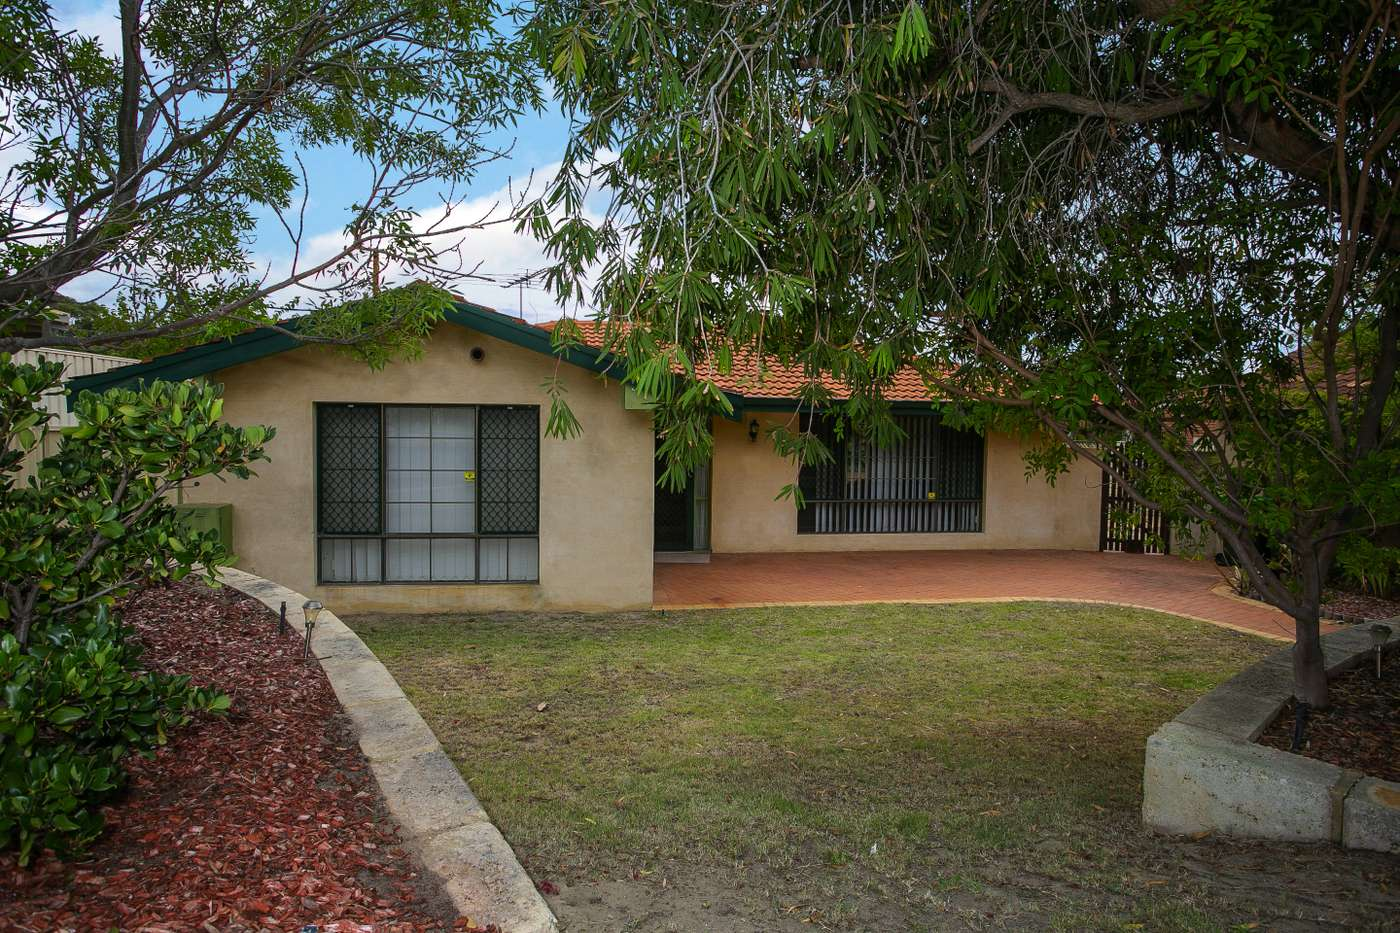 Main view of Homely house listing, 36 Gleddon Way, Hillarys, WA 6025